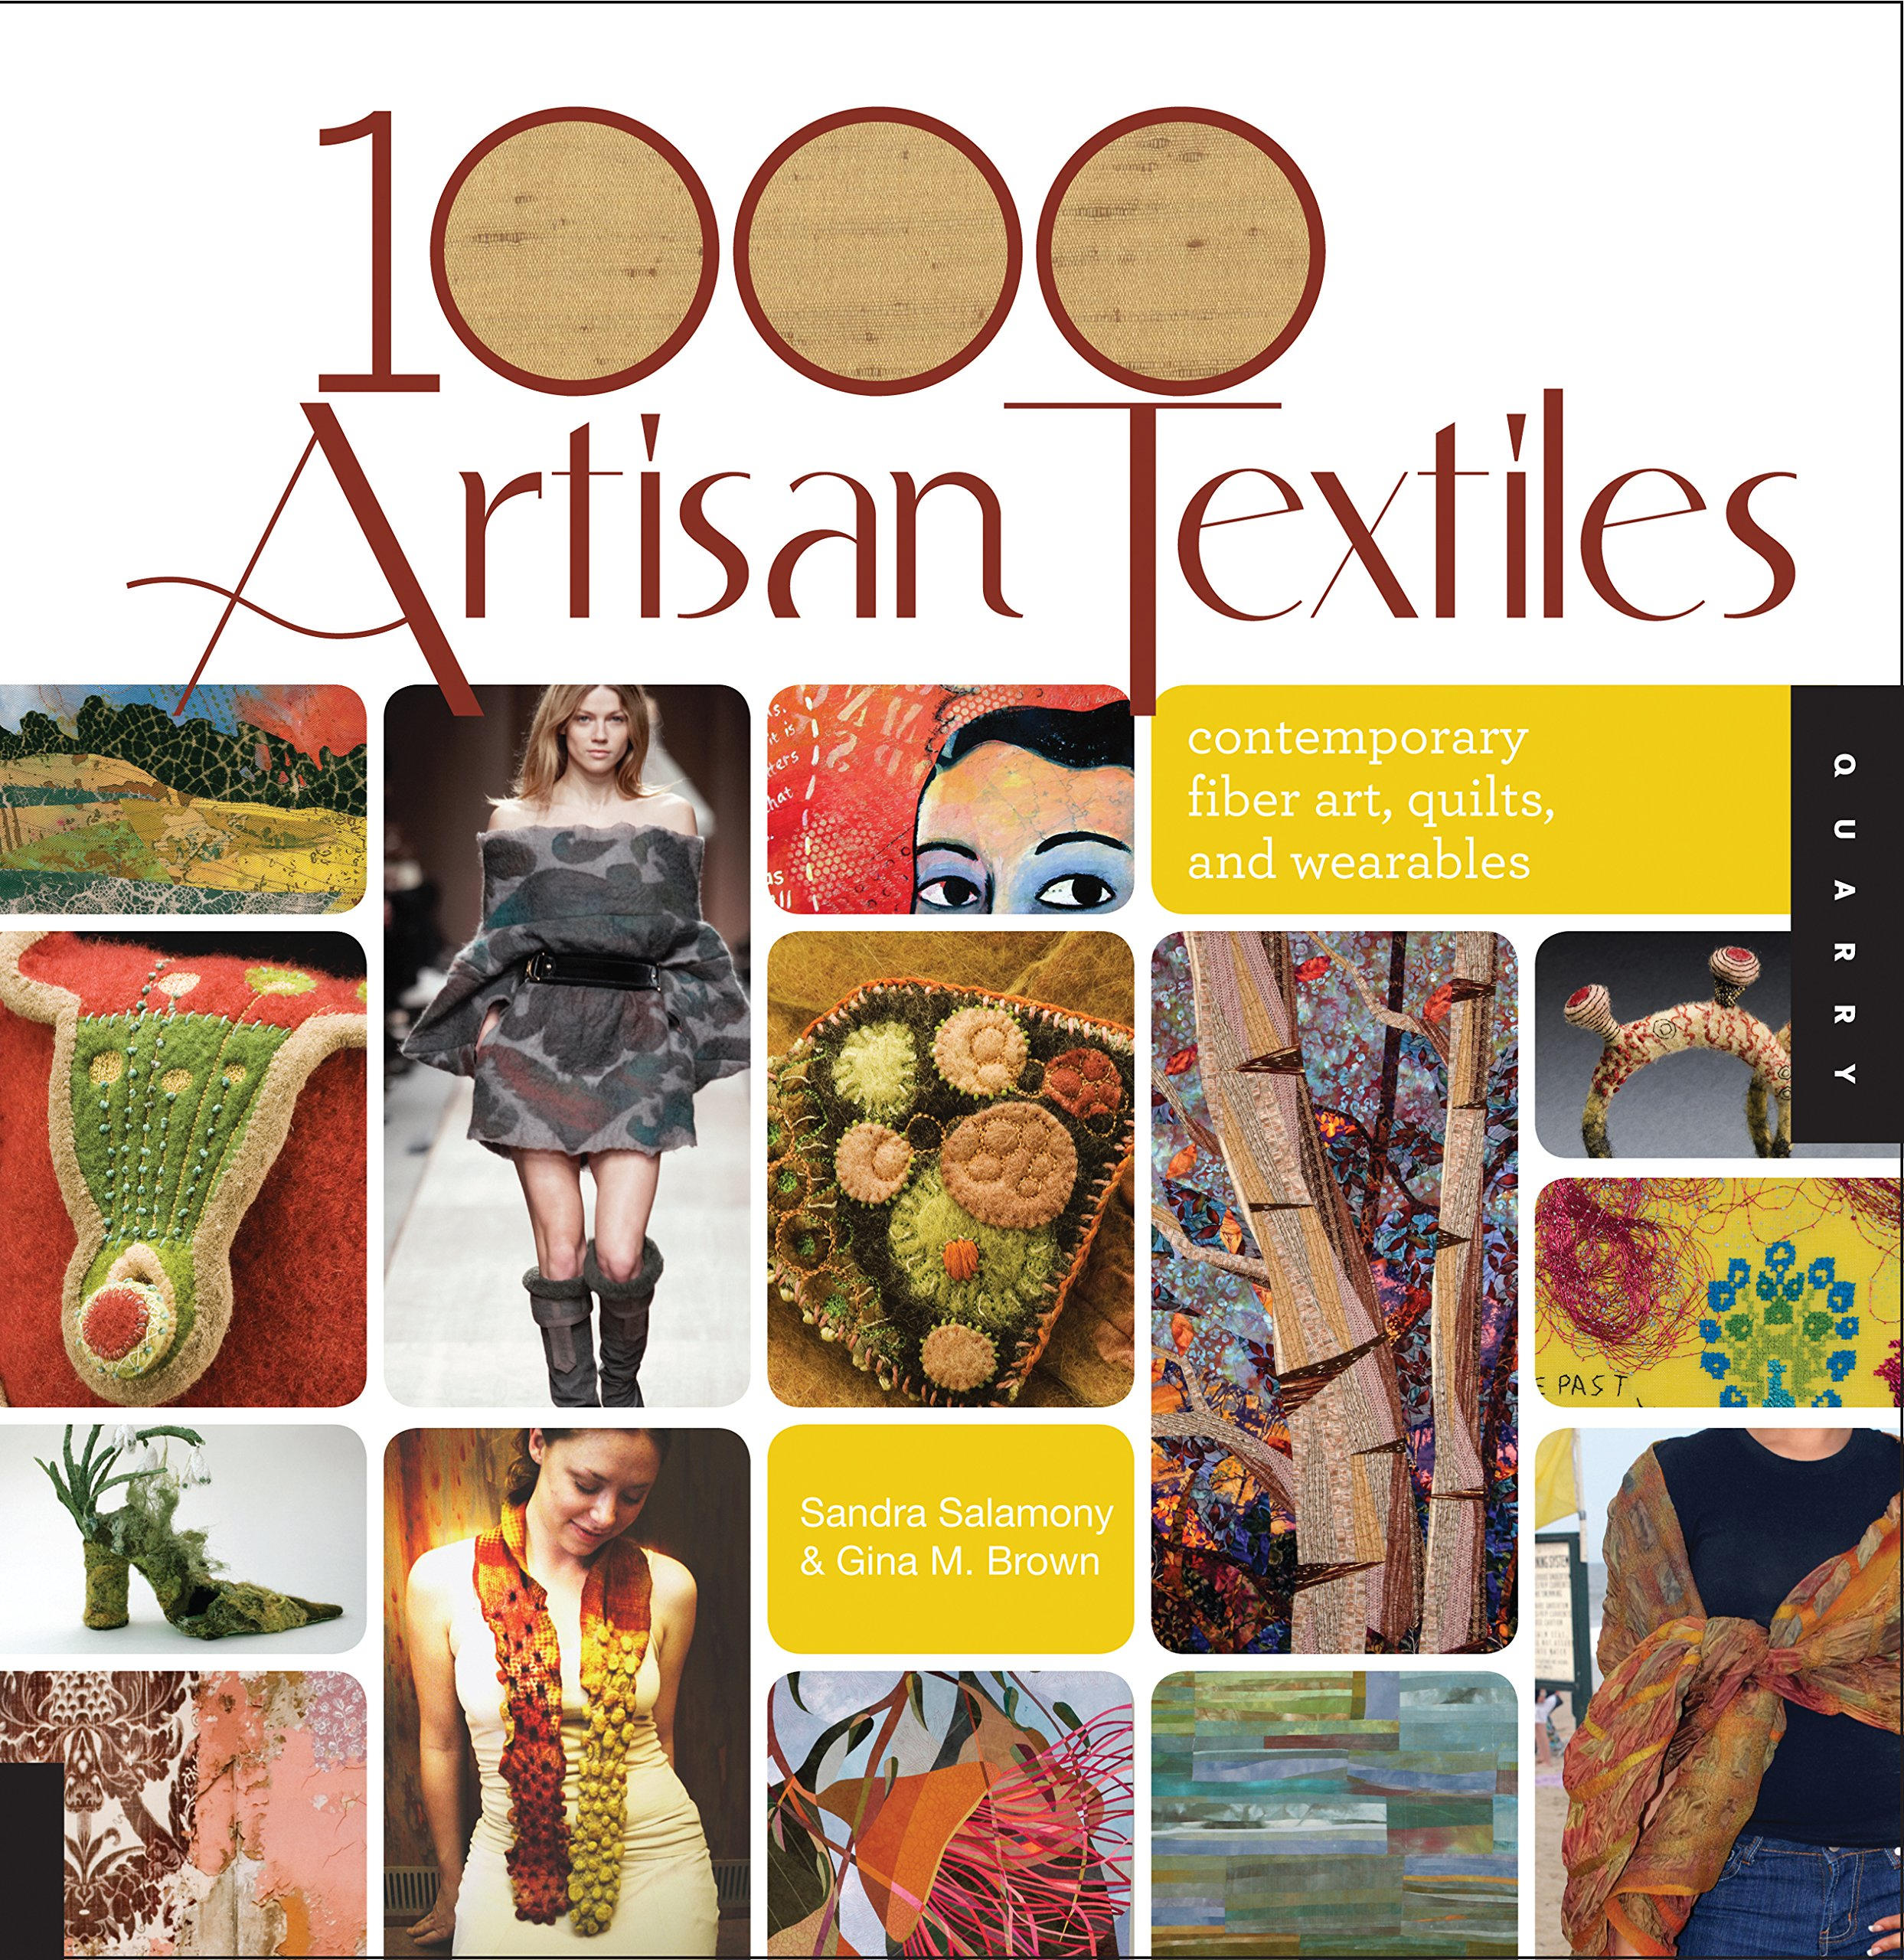 Amazon.com: 1,000 Artisan Textiles: Contemporary Fiber Art, Quilts, and  Wearables (9781592536092): Sandra Salamony, Gina Brown: Books